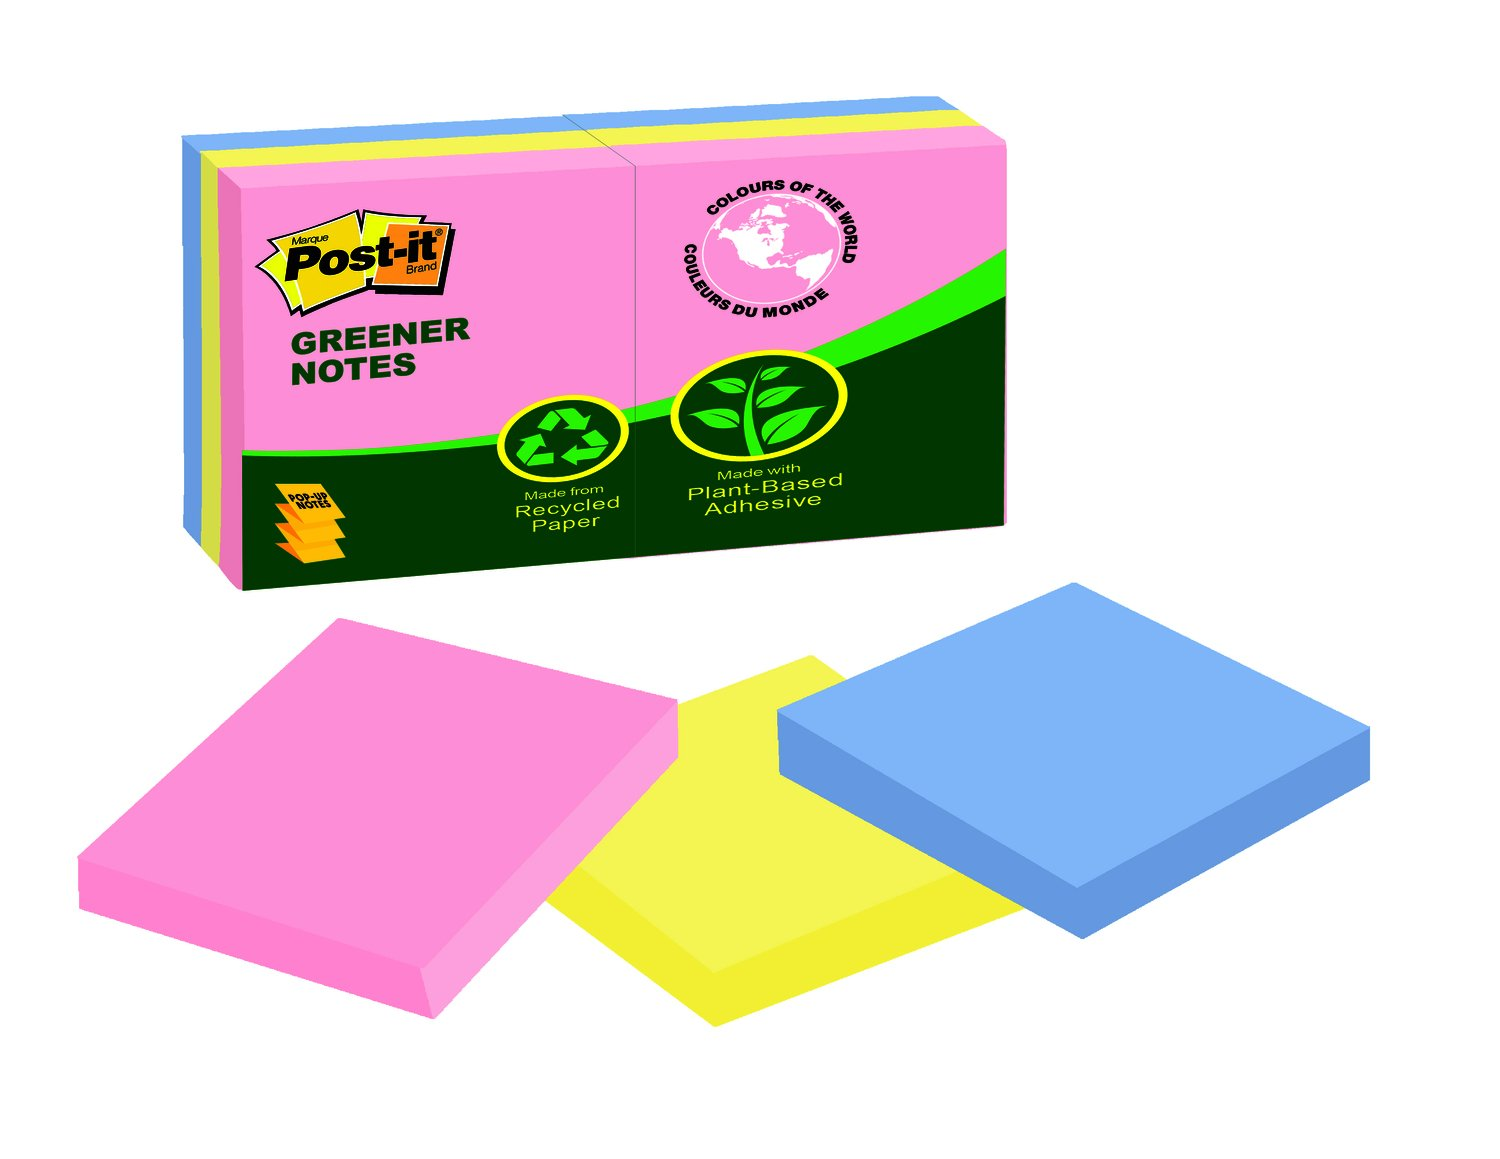 Post-it® Greener Notes, 3-Inch x 3-Inch, Helsinki Collection, 75 sheets per pad, 24 pads per pack, (654R-24CP-AP-C) Post-it® Greener Notes